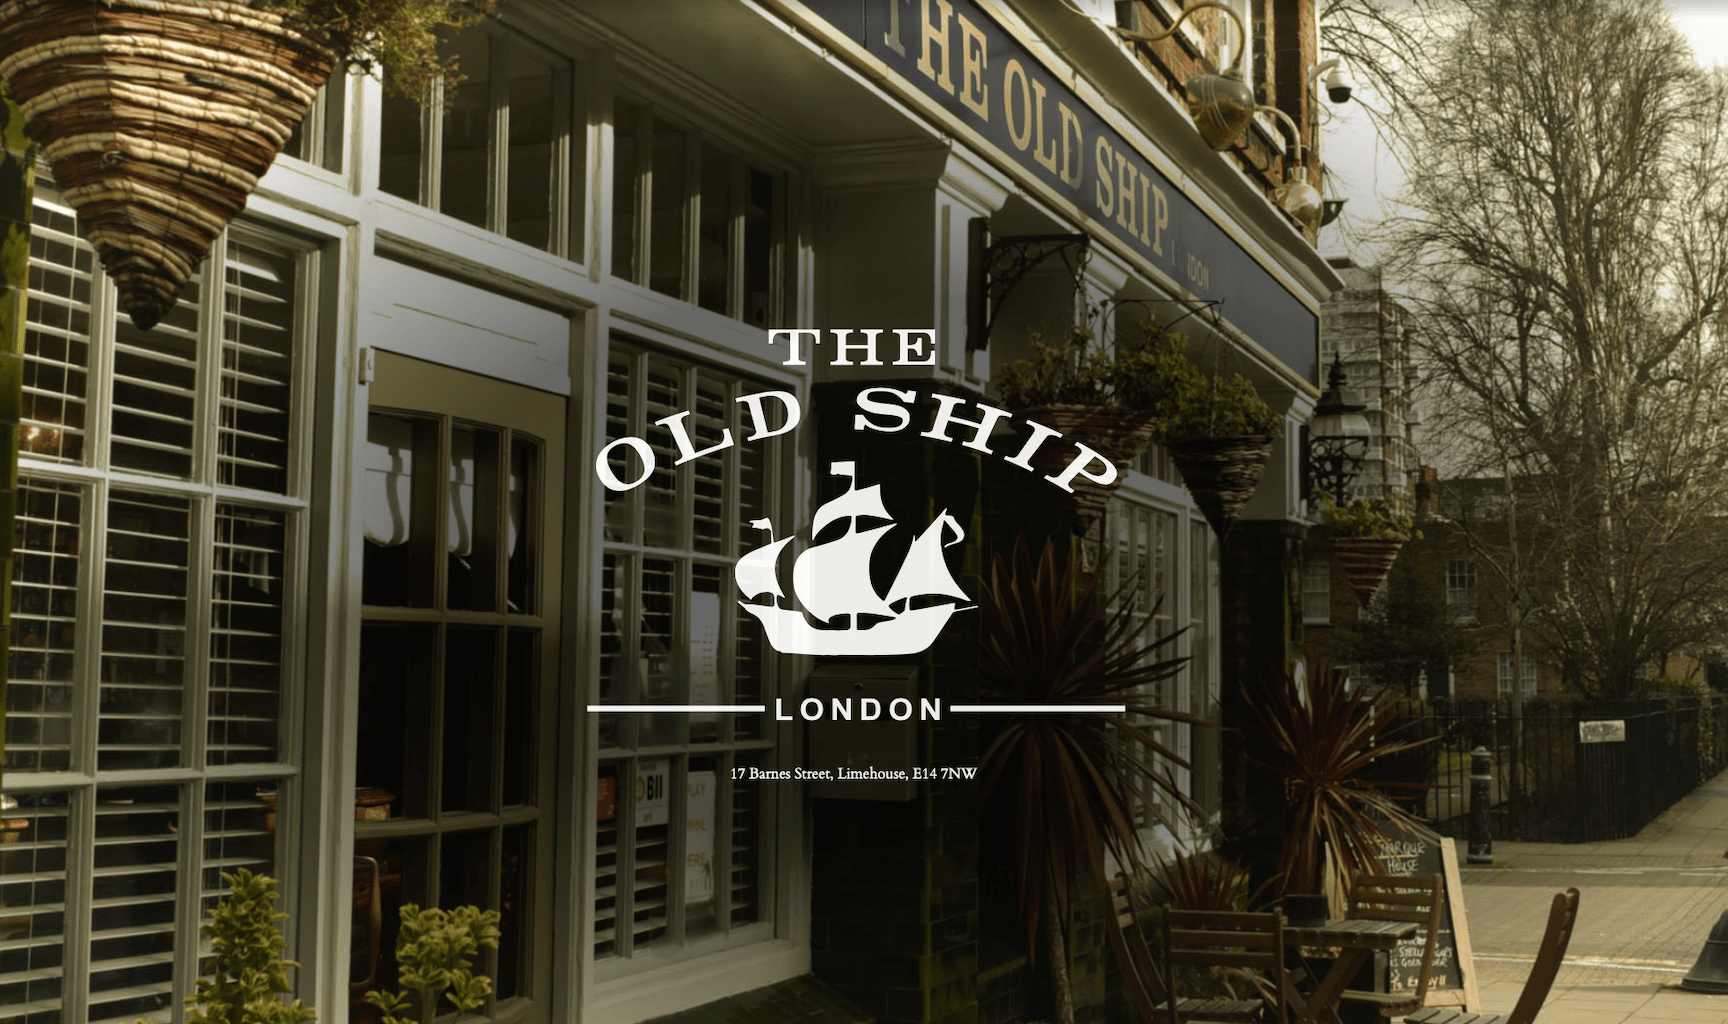 The_Old_Ship_pub__E14_–_The_Old_Ship_is_an_independently_run__friendly_pub_on_York_Square__Limehouse_–_2_minutes_walk_from_Limehouse_Station_for_DLR__C2C_and_buses